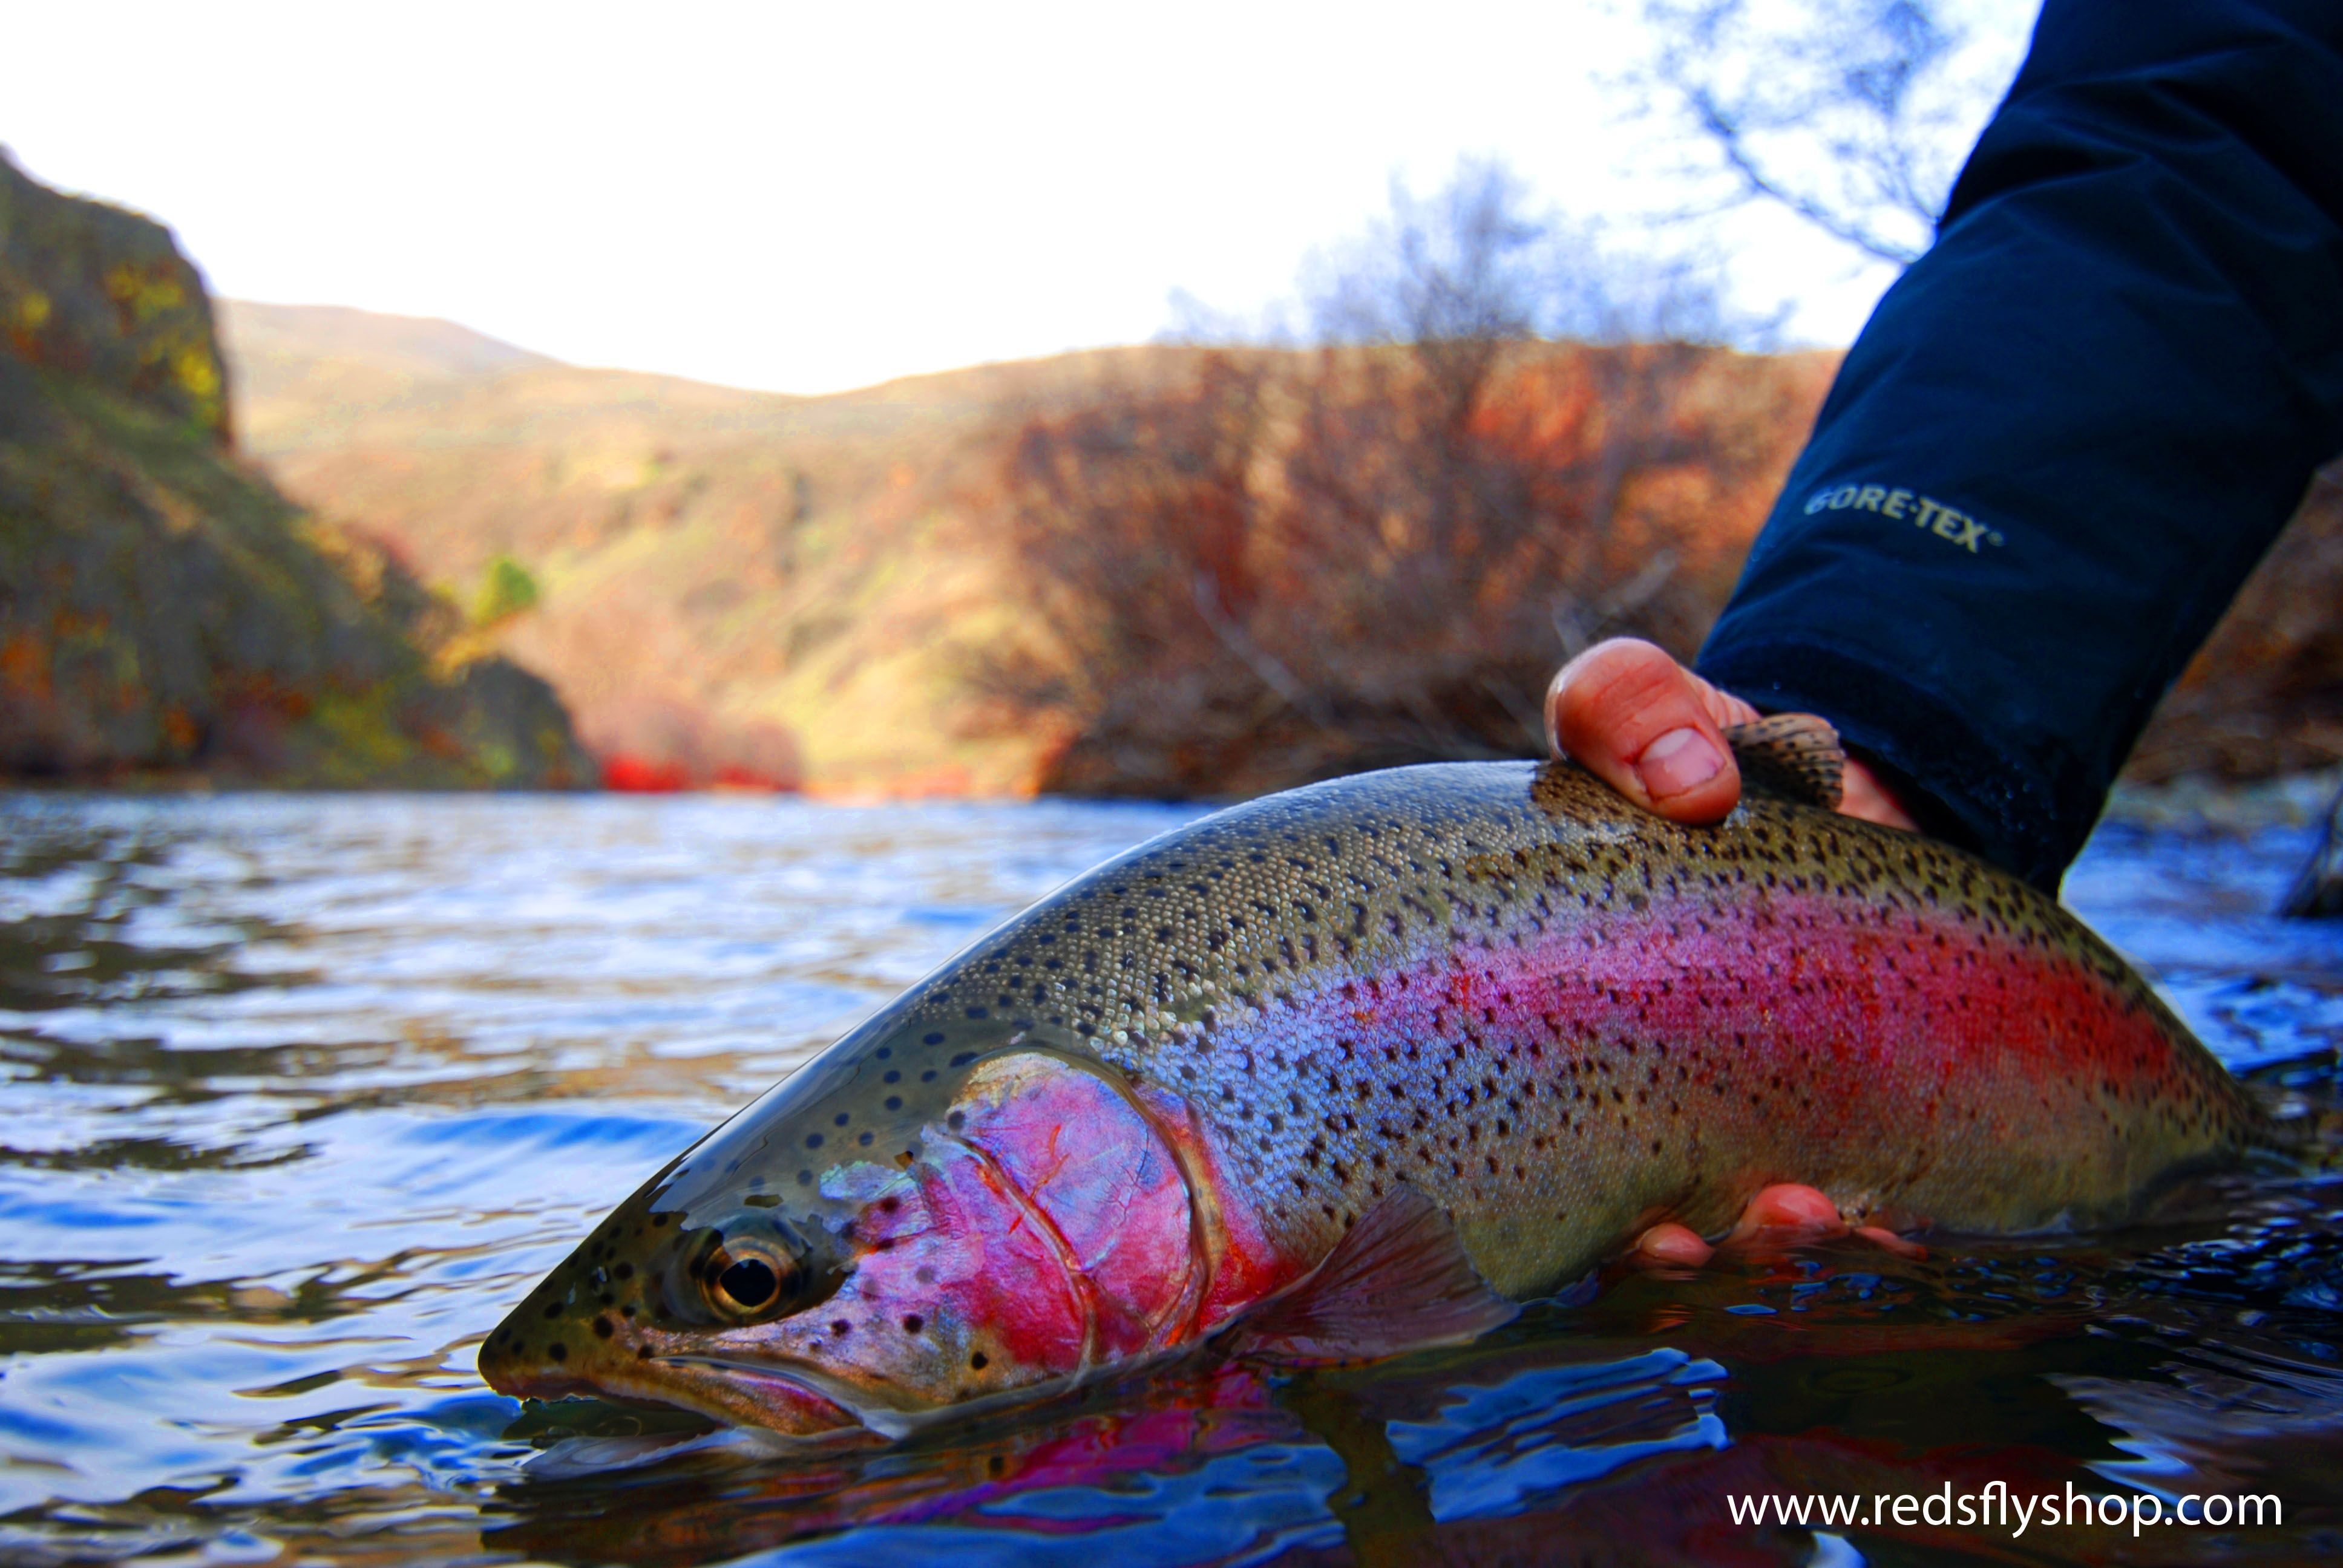 Yakima River Canyon Is Considered One Of The Nation S Top Ten Rainbow Trout Fishing Spots Or So I Was Told Fly Fishing Flies Trout Rainbow Trout Fishing Fish